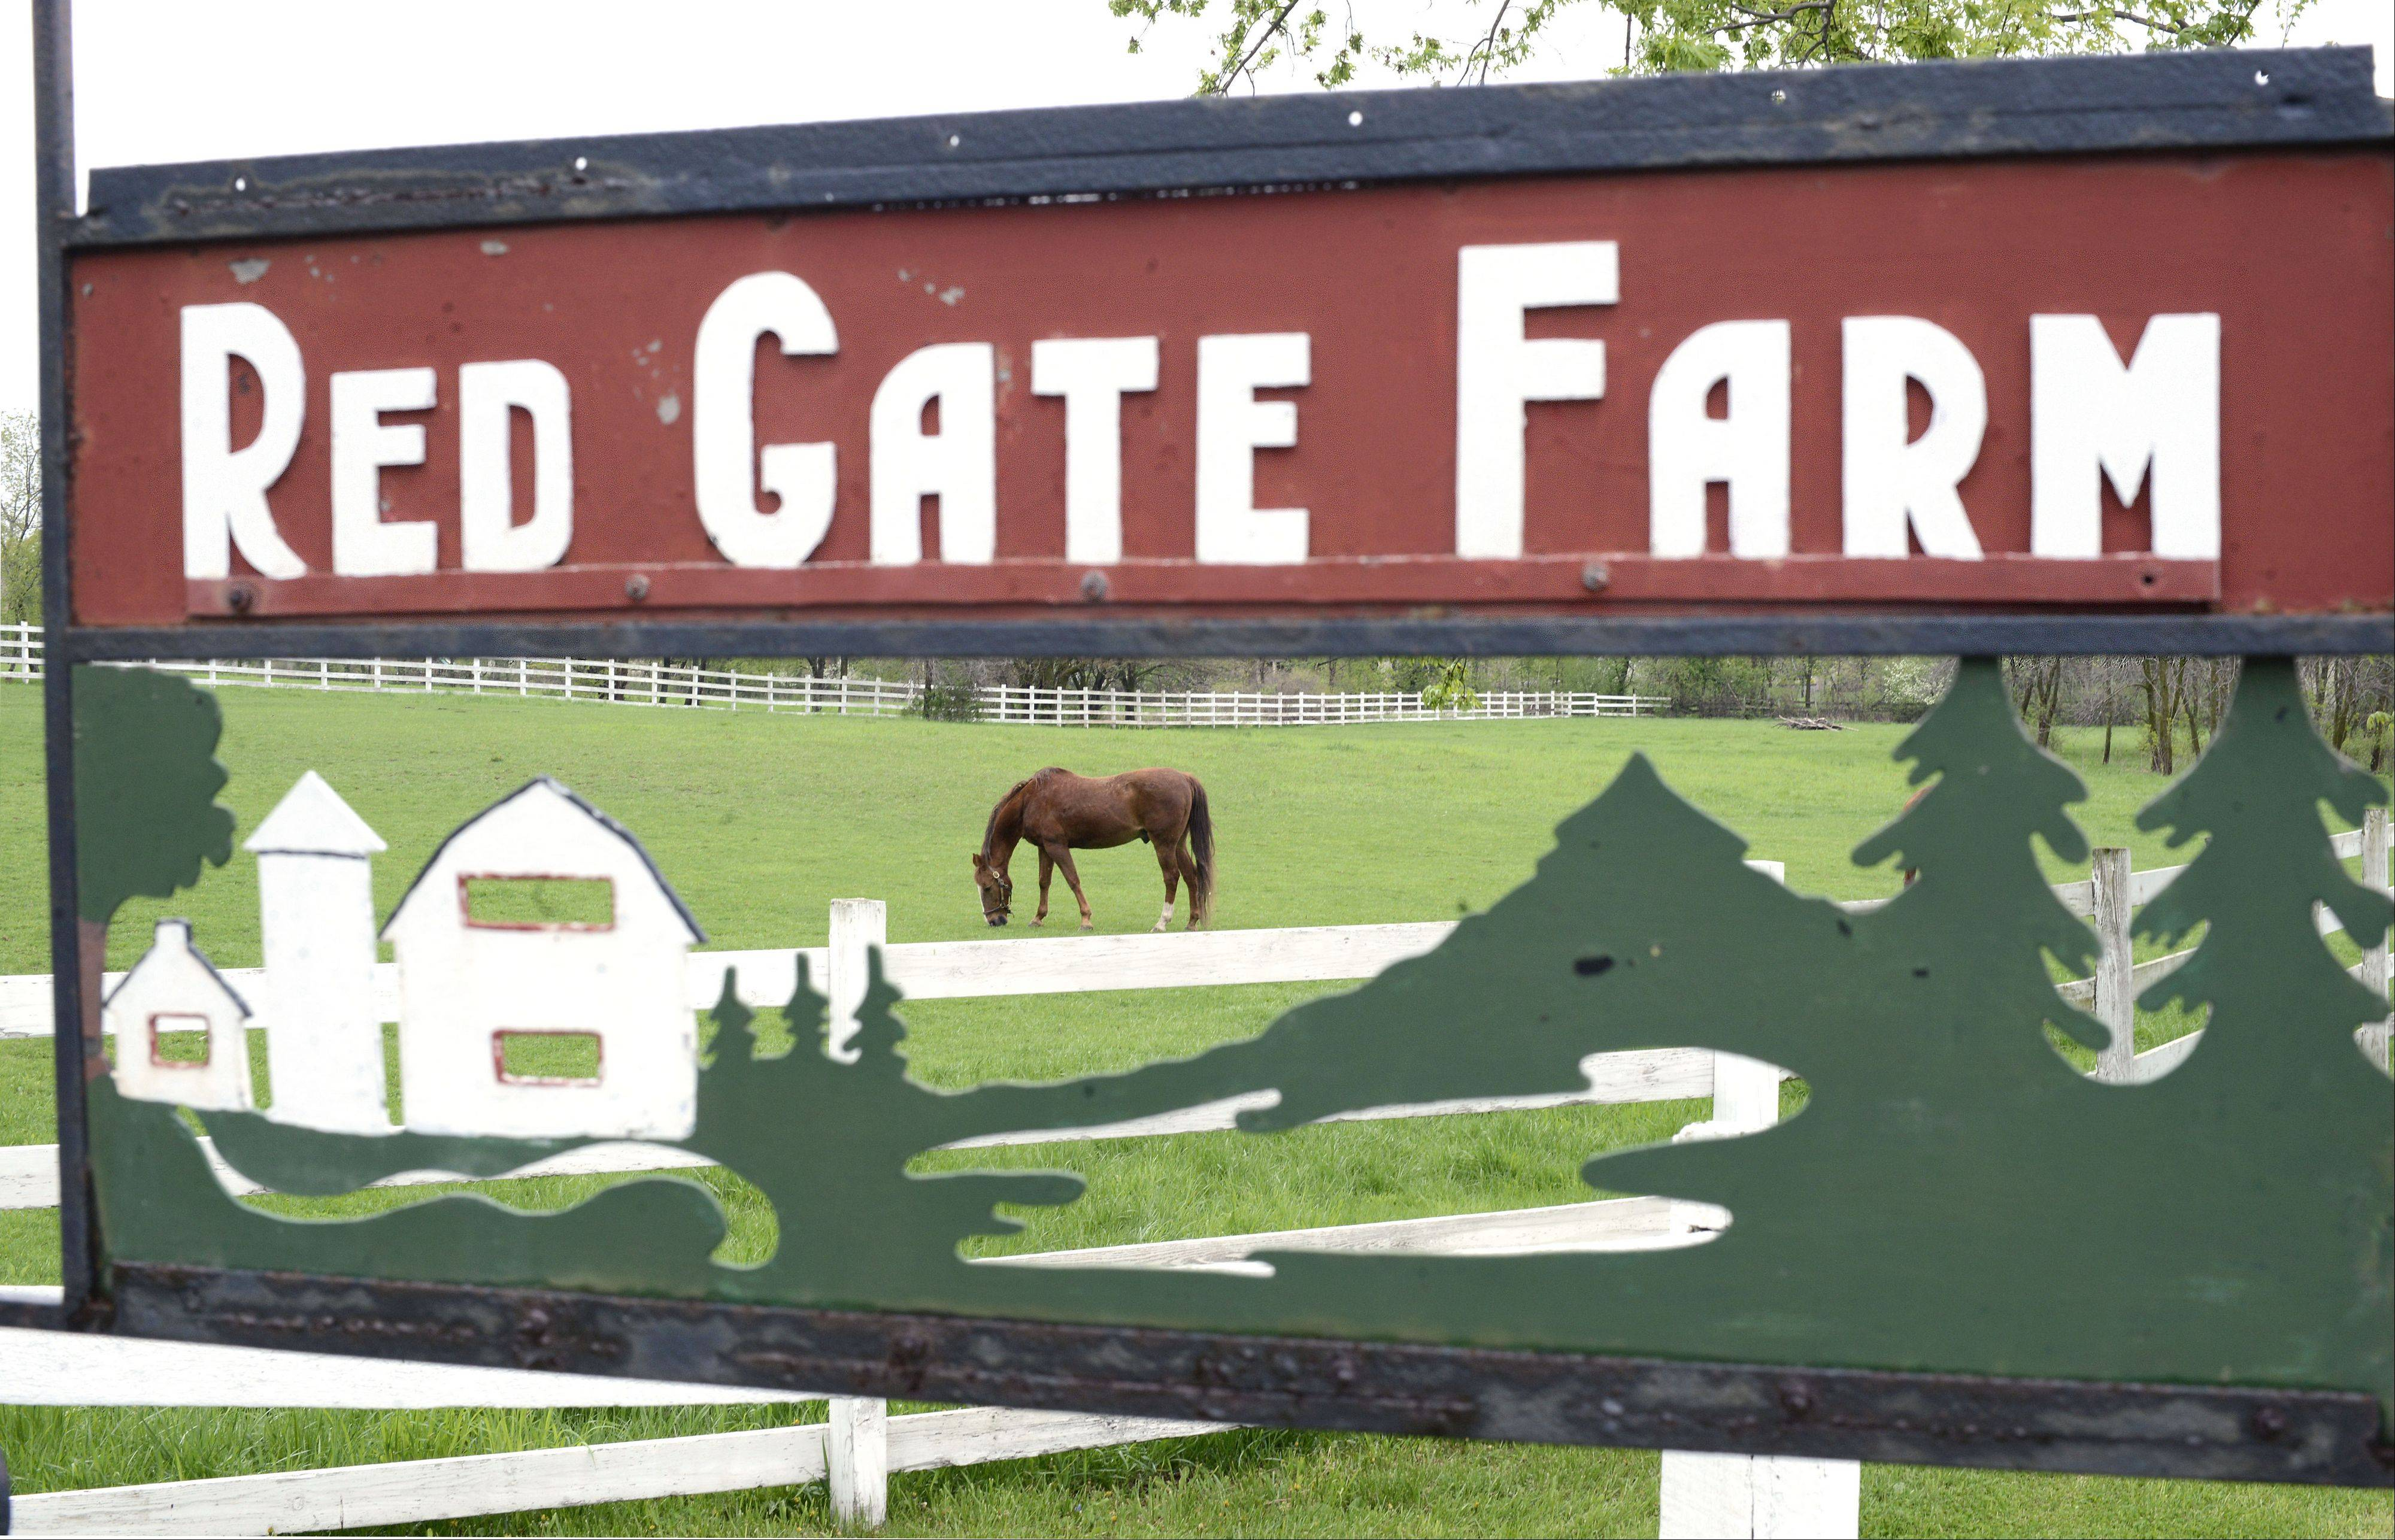 Looking as if it's a part of a decorative sign, a horse grazes in a front pasture at Red Gate Farm along Red Gate Road in St. Charles on Friday, May 10.